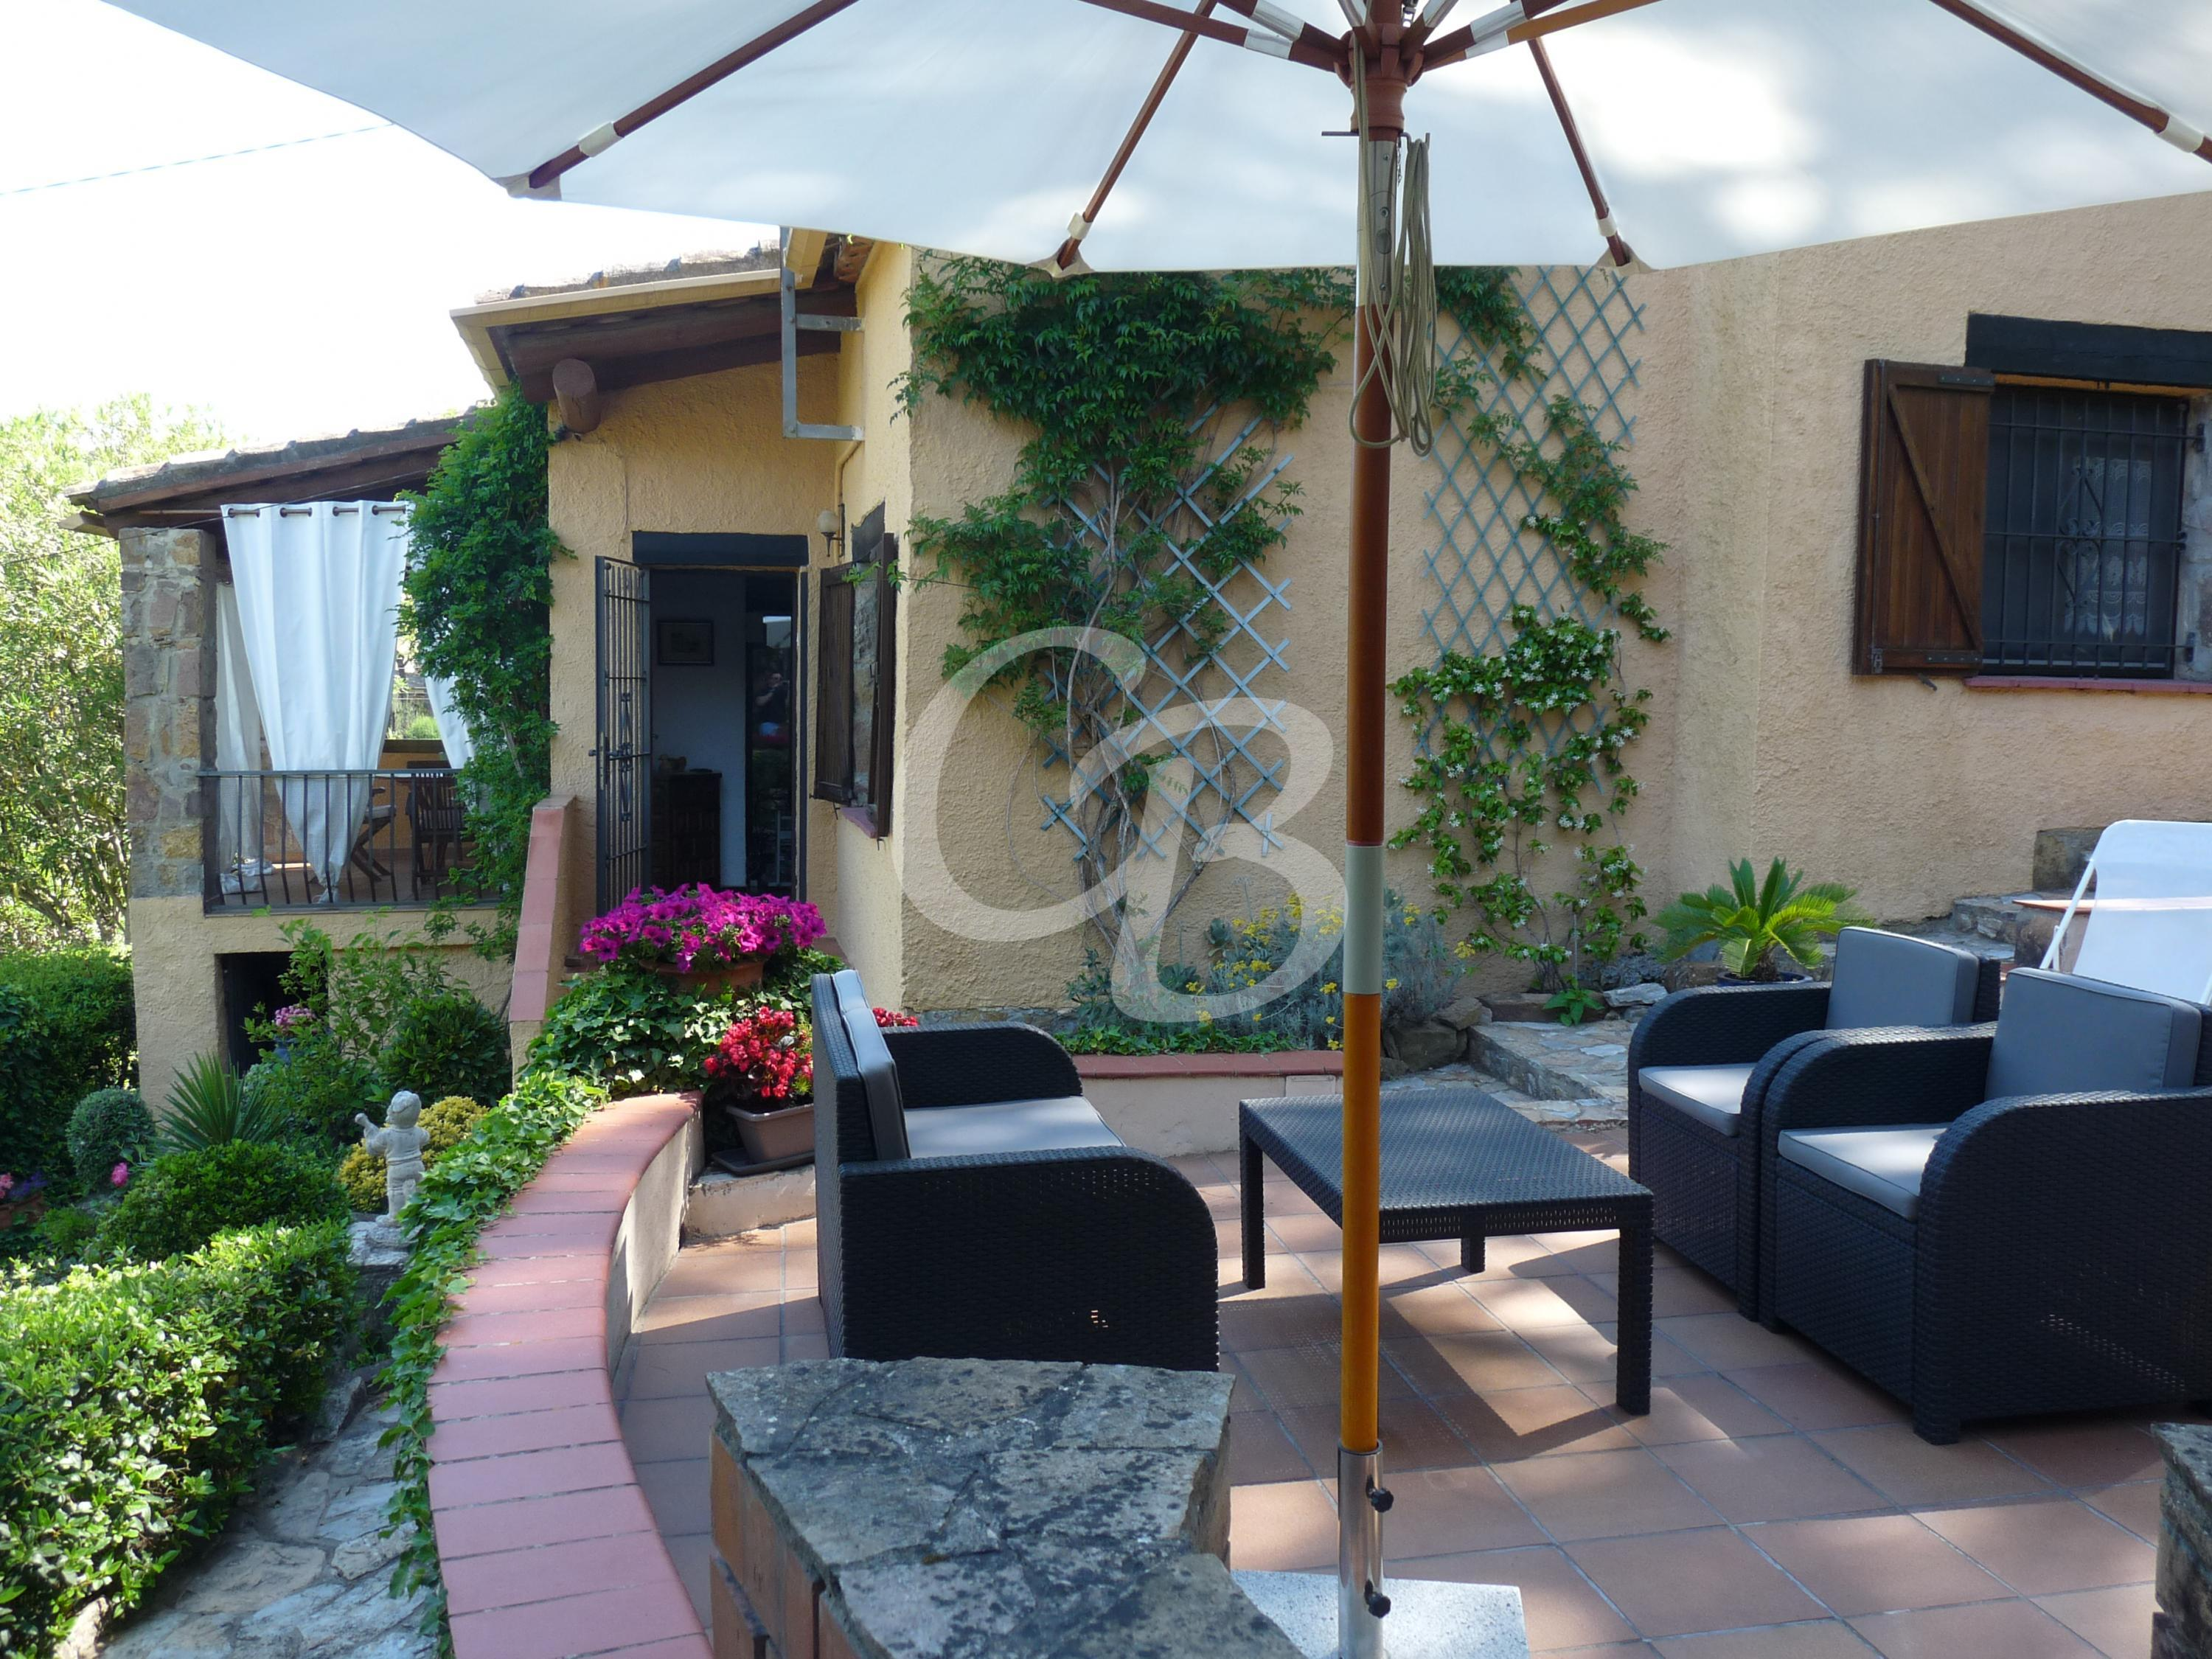 2112 CASA CON AMPLIO JARDIN EN RESIDENCIAL BEGUR Detached house  Begur